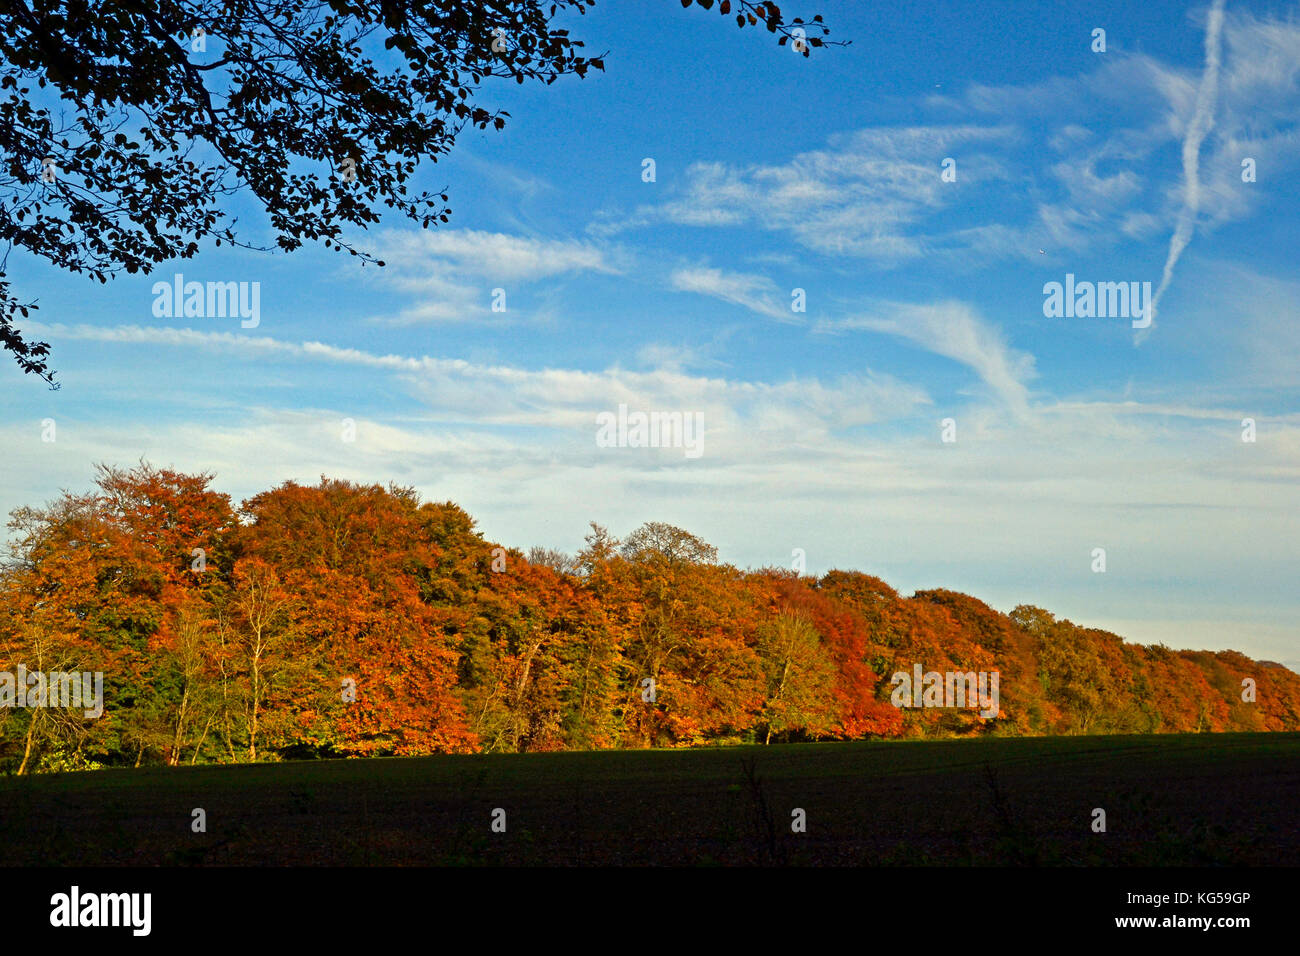 A walk on The Ridgeway Path to Whiteleaf Hill and Whiteleaf Woods. Autumn, Chilterns, UK - Stock Image